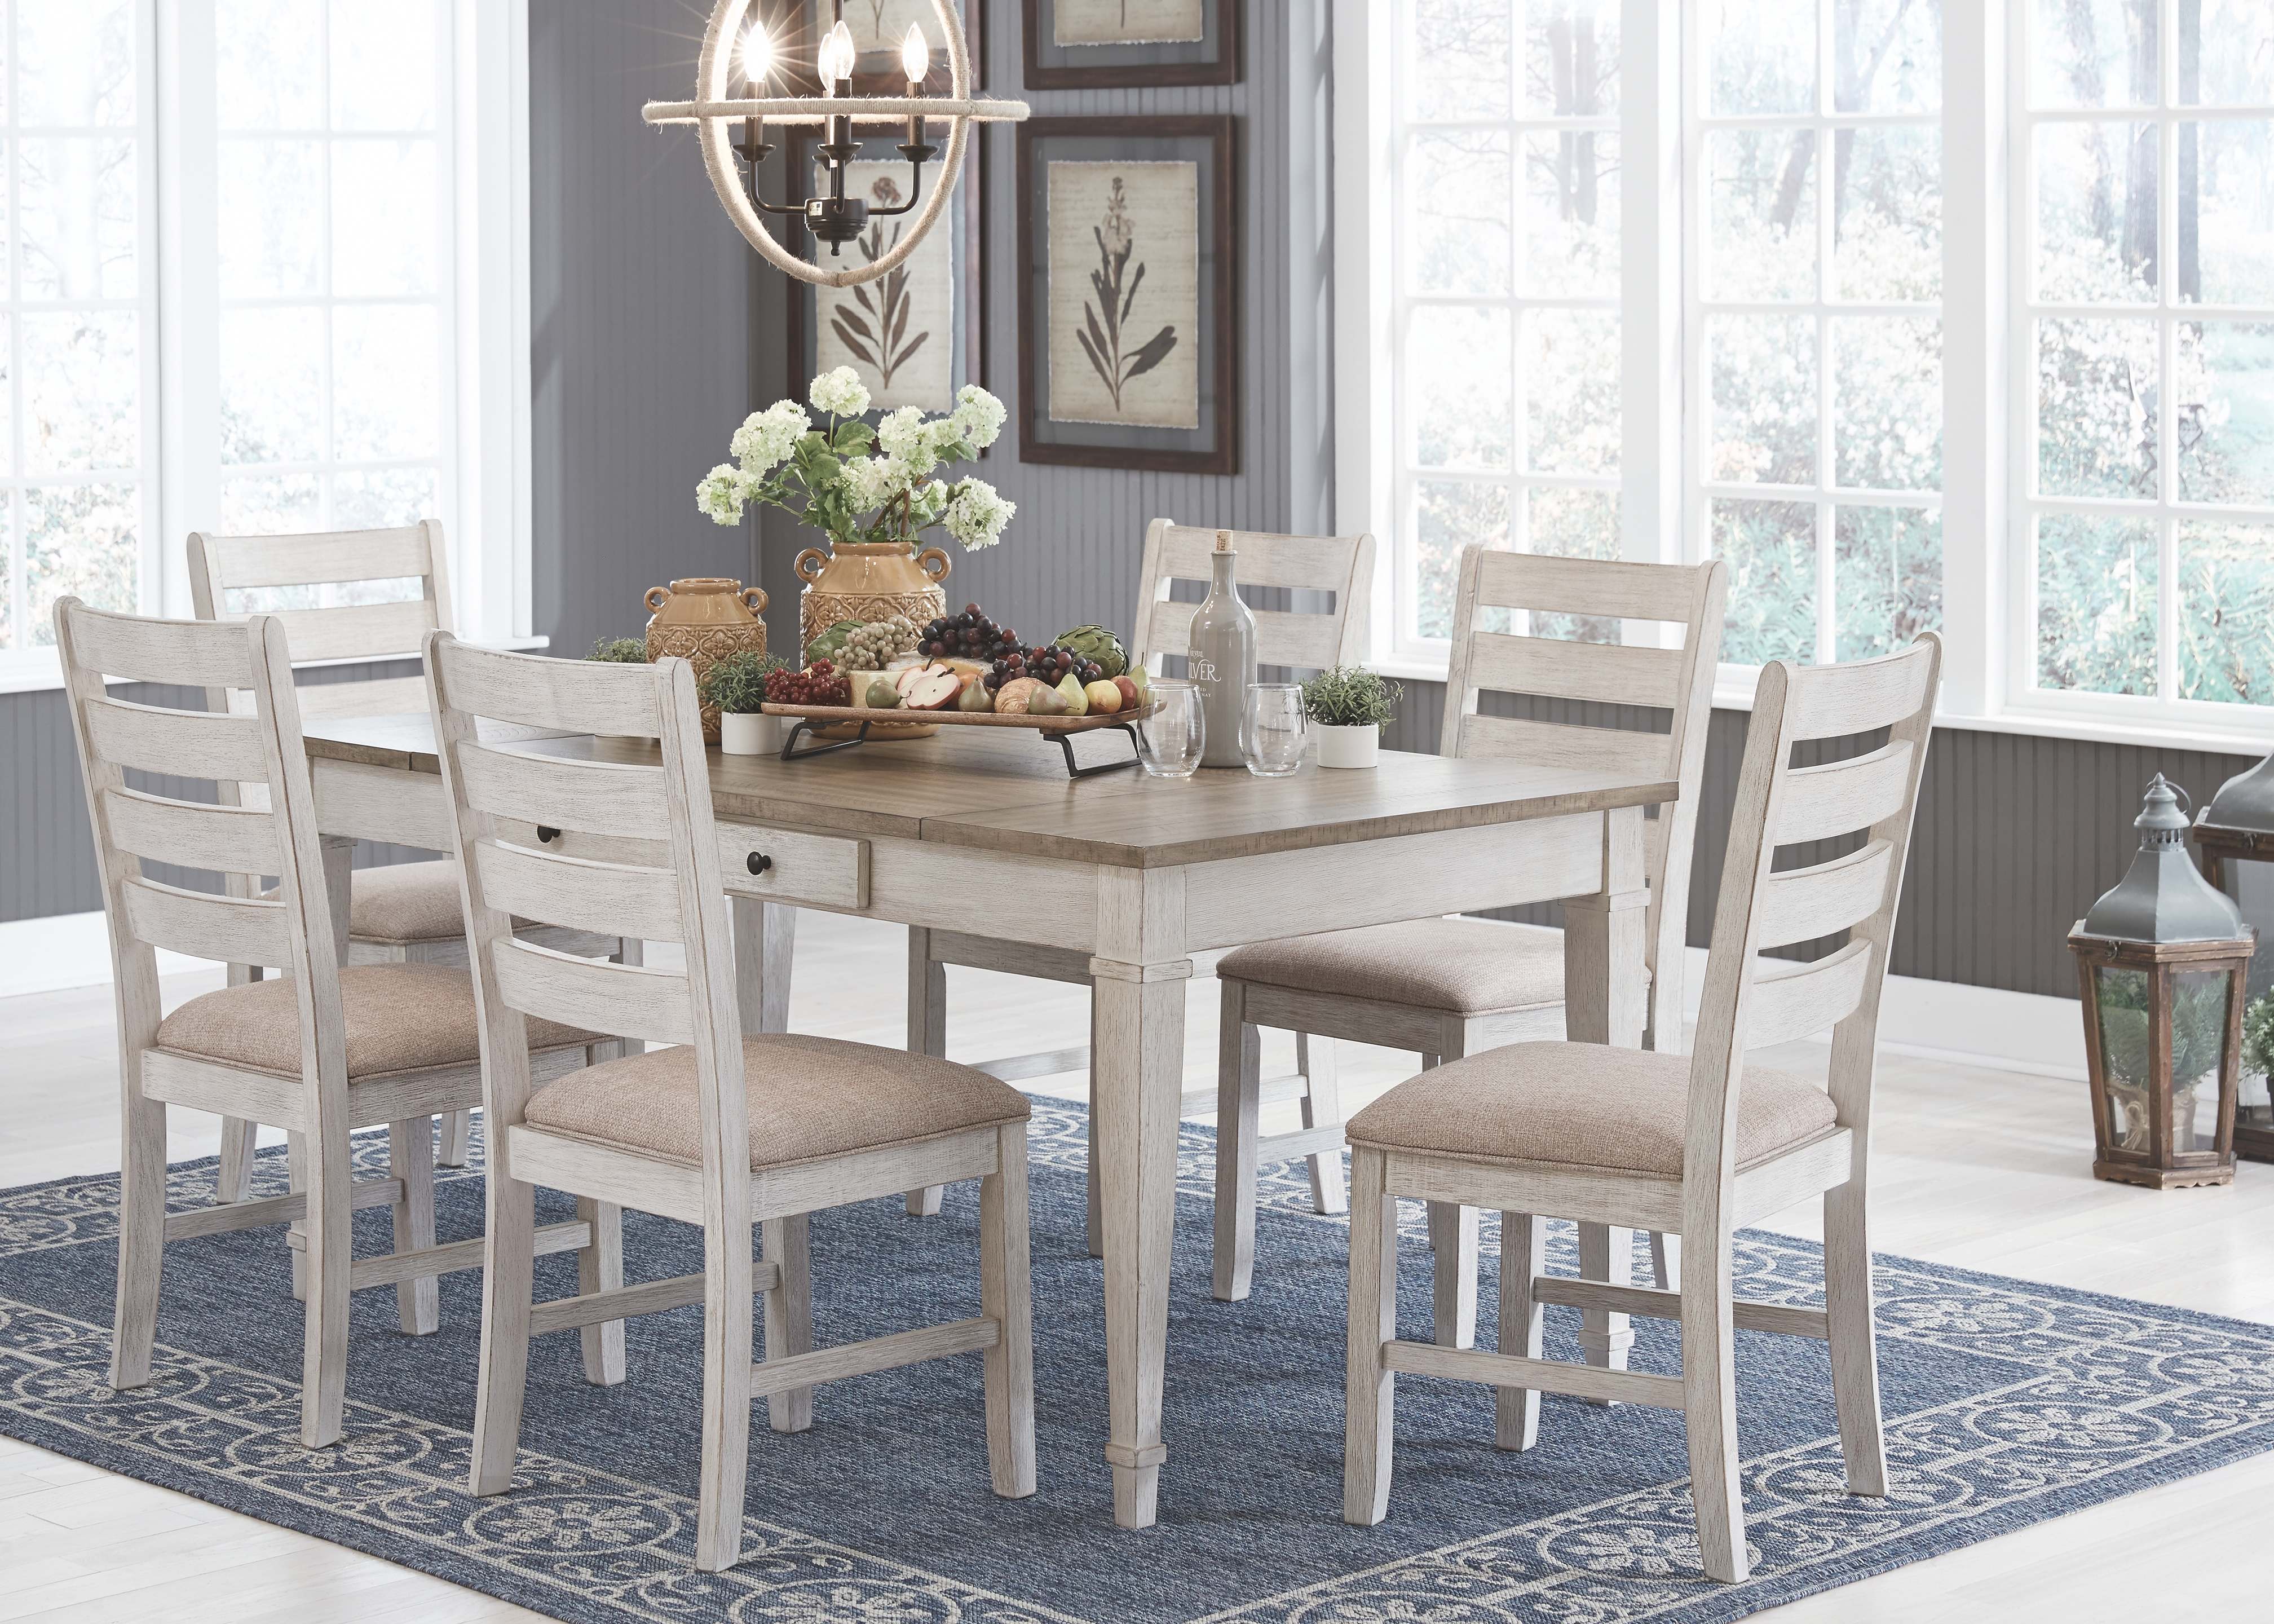 Skempton Dining Room Table by Signature Design by Ashley ...